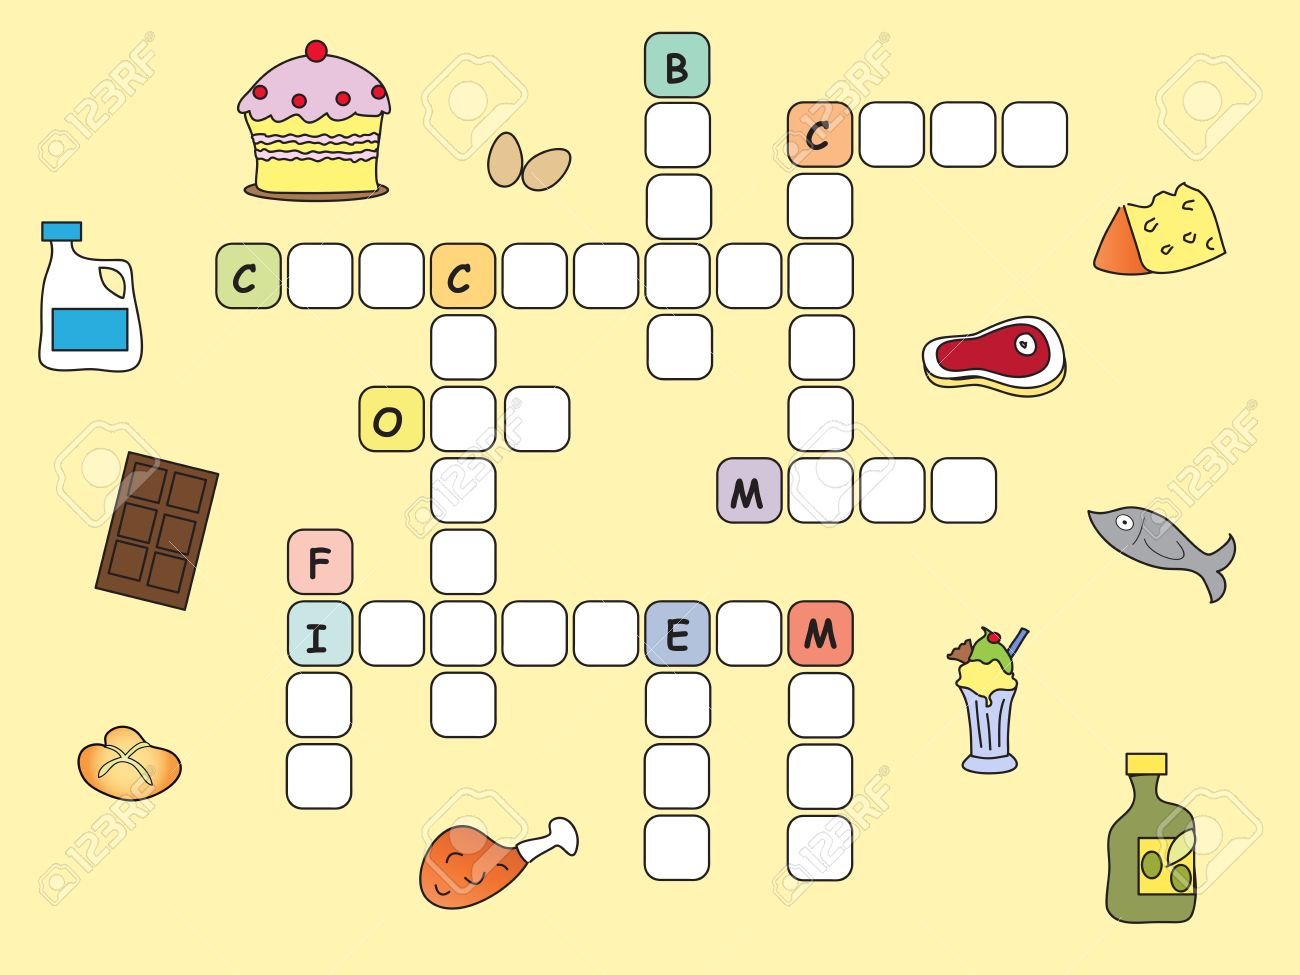 Game For Children Easy Crossword With Food Stock Photo